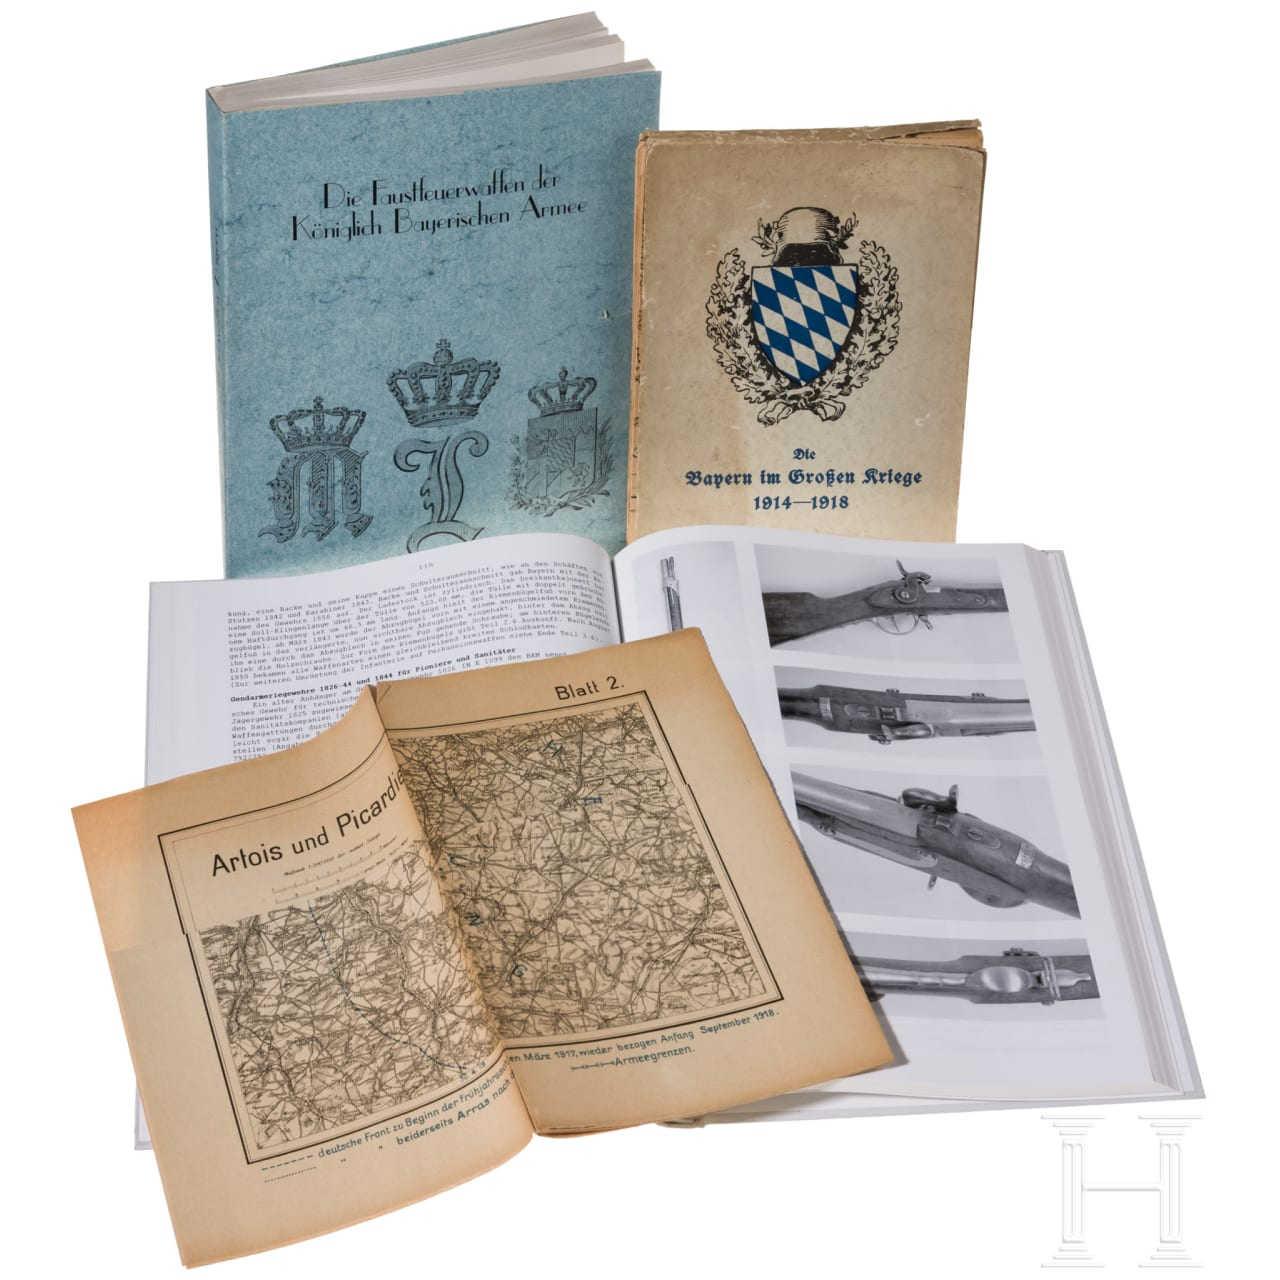 Three Bavarian military books